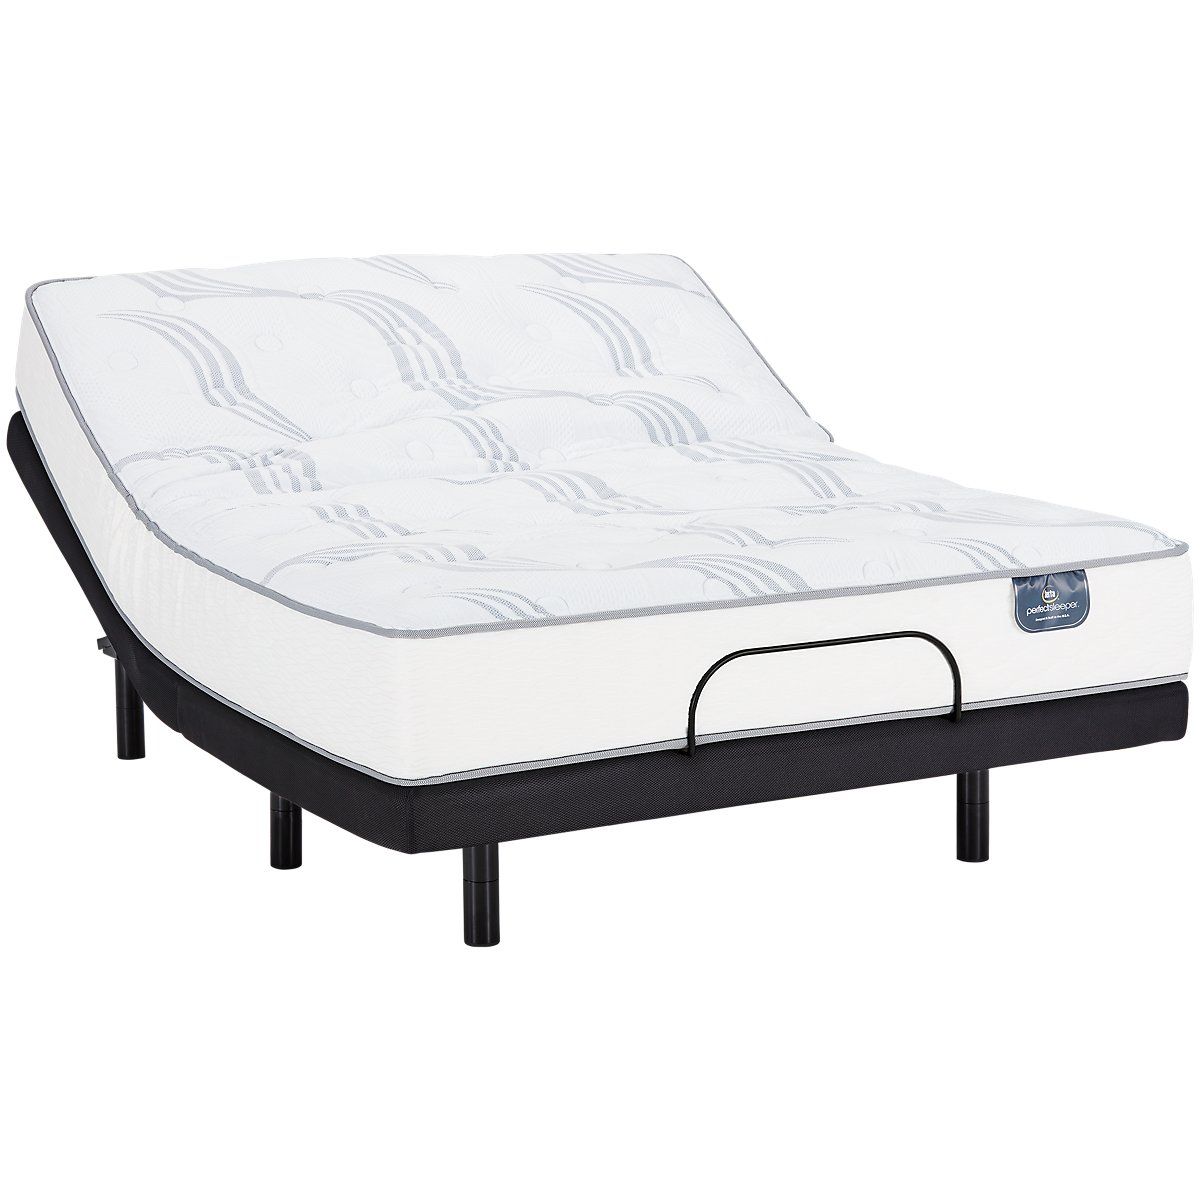 Serta Perfect Sleeper Cobbins Plush Elevate Adjustable Mattress Set